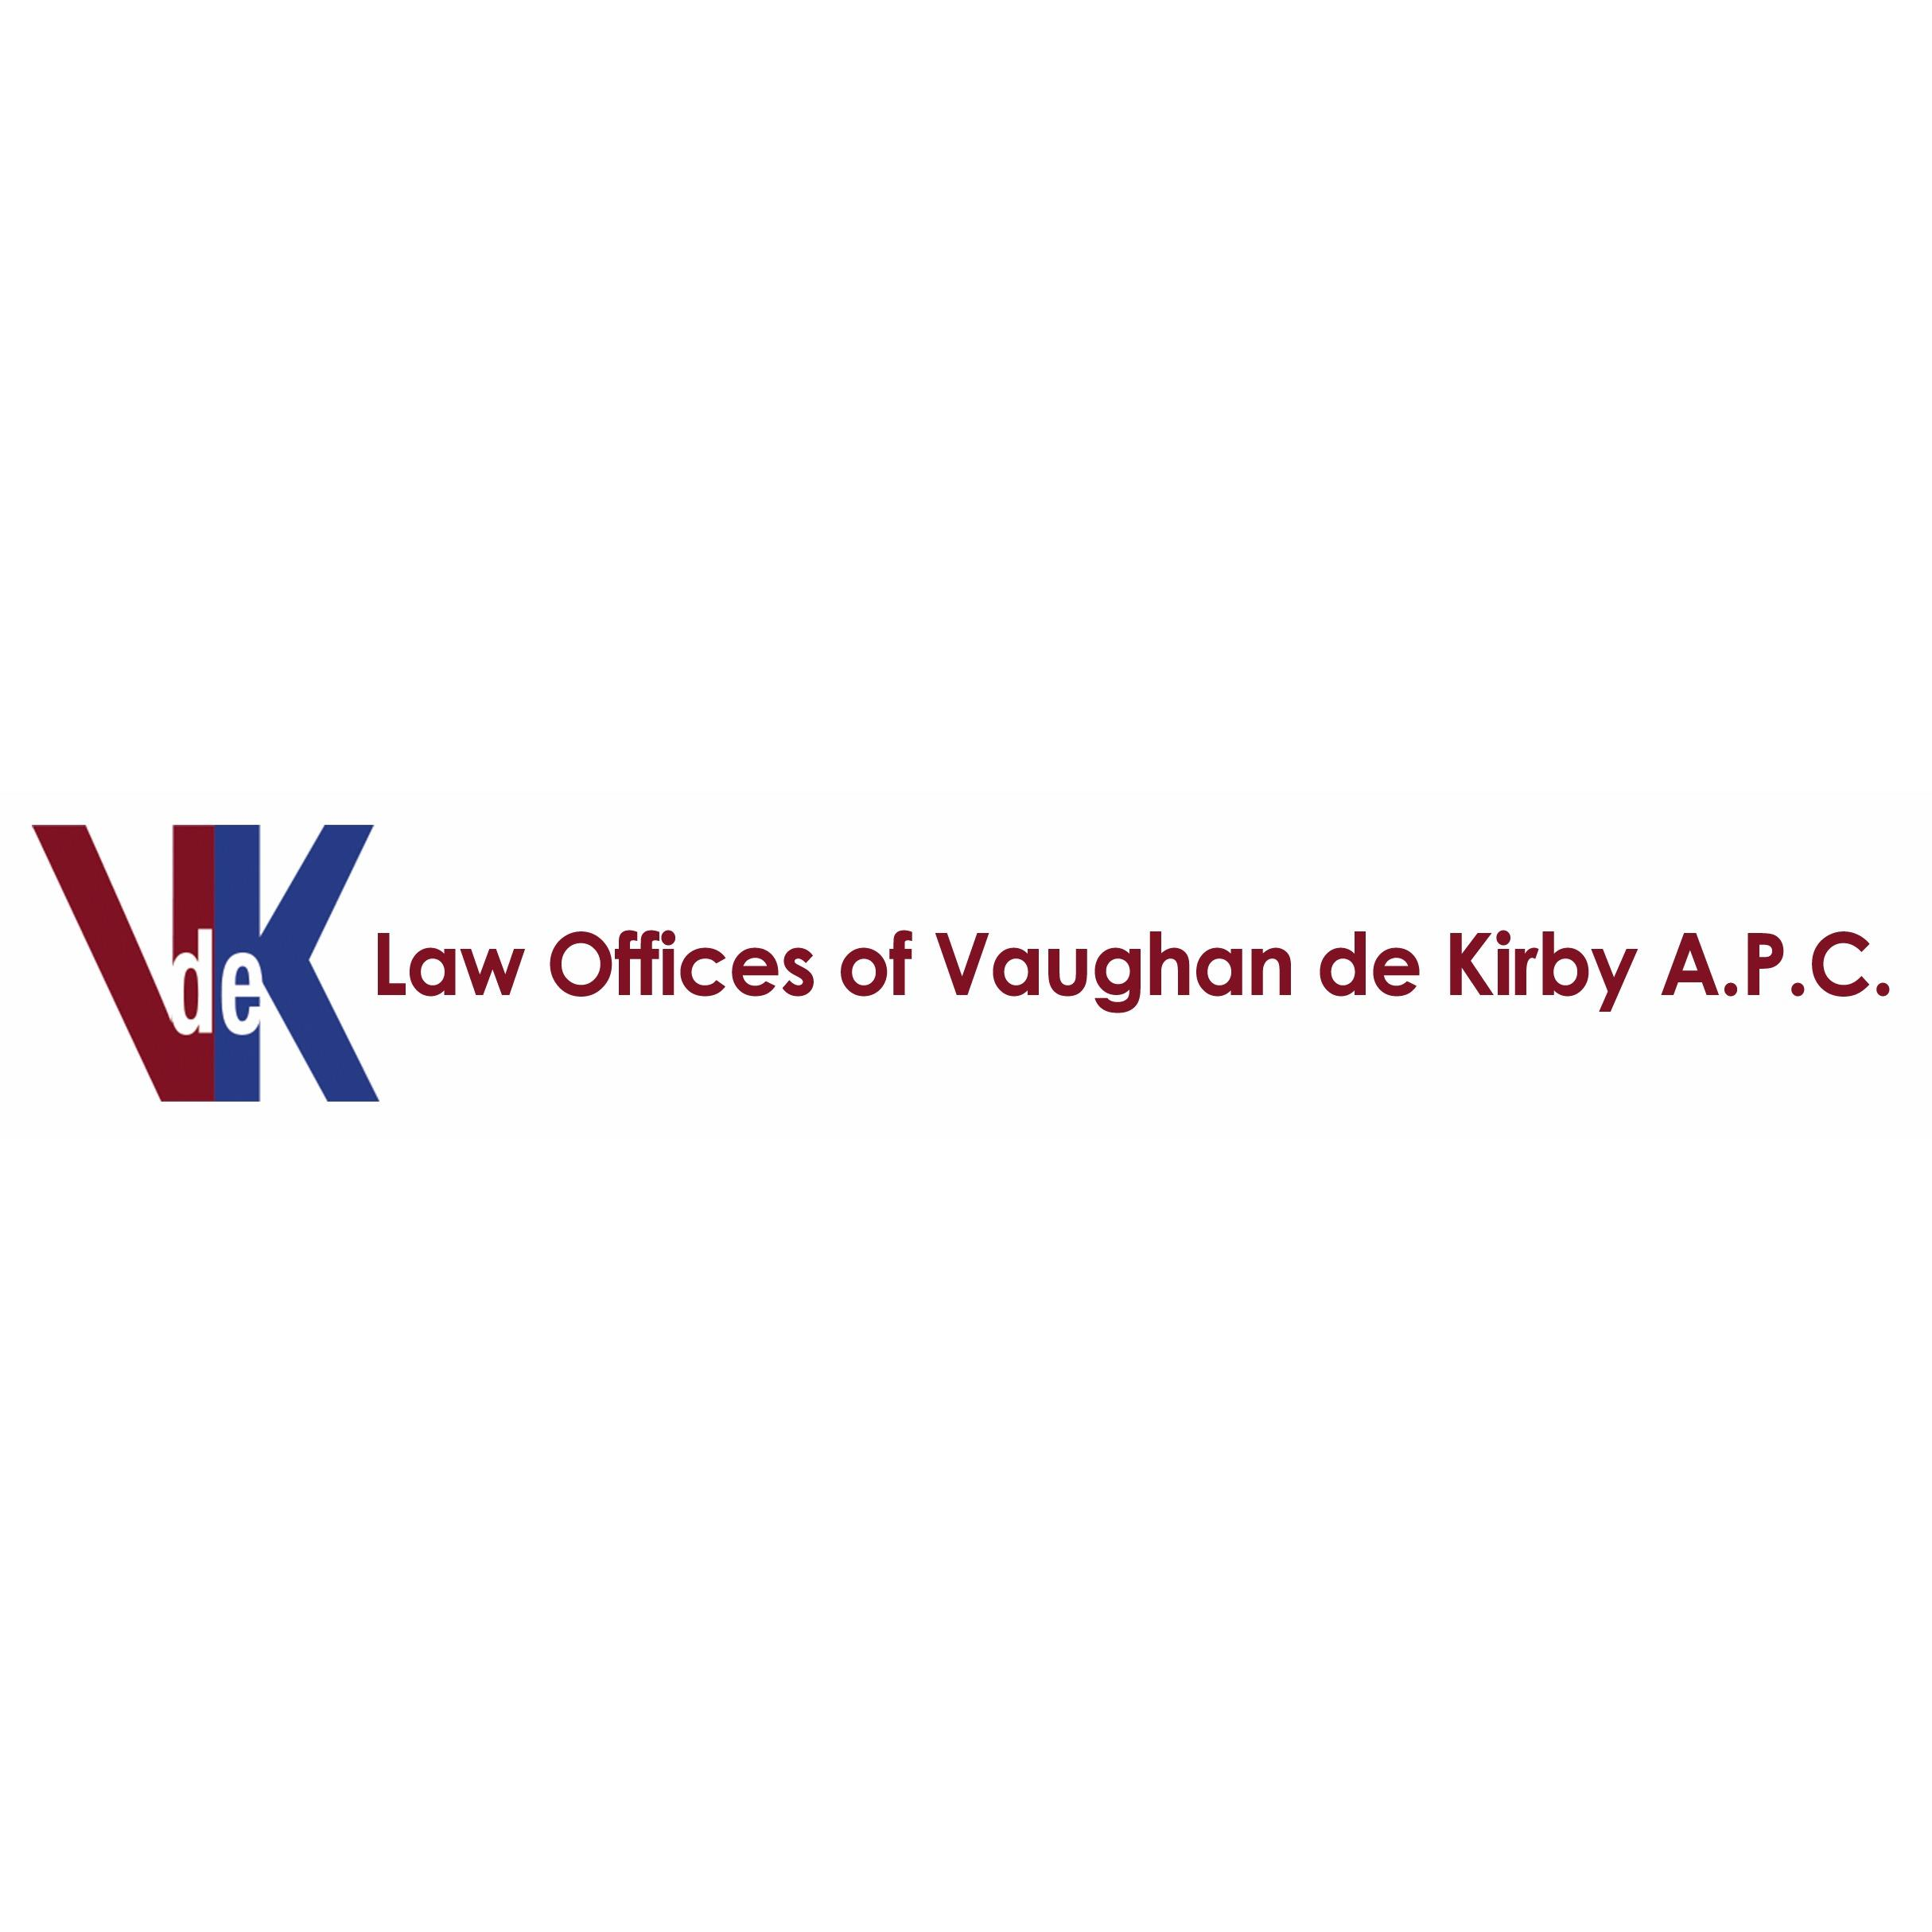 Law Offices of Vaughan de Kirby